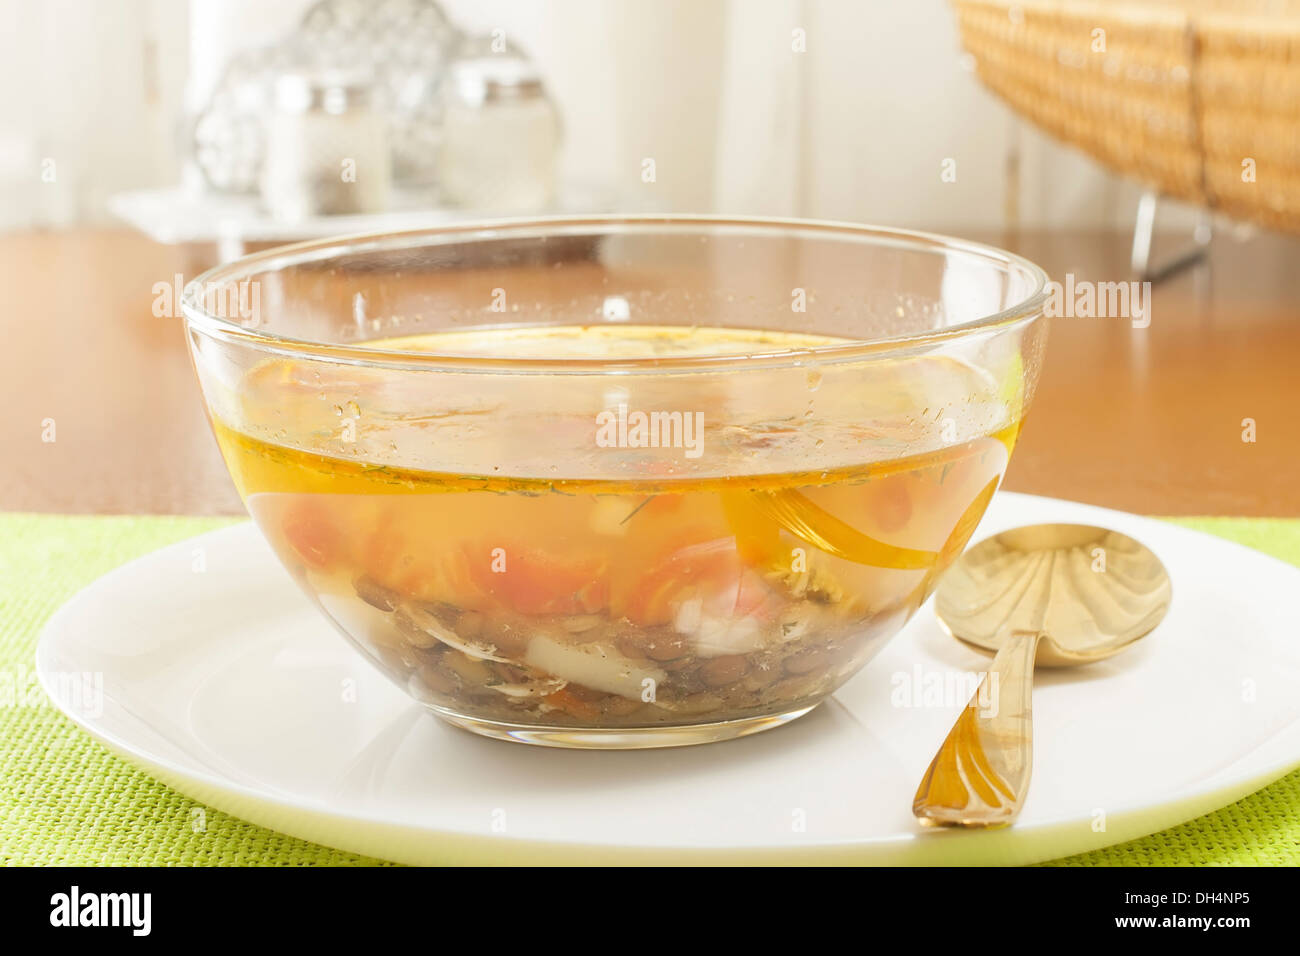 transparent lentil soup in a glass dish Stock Photo